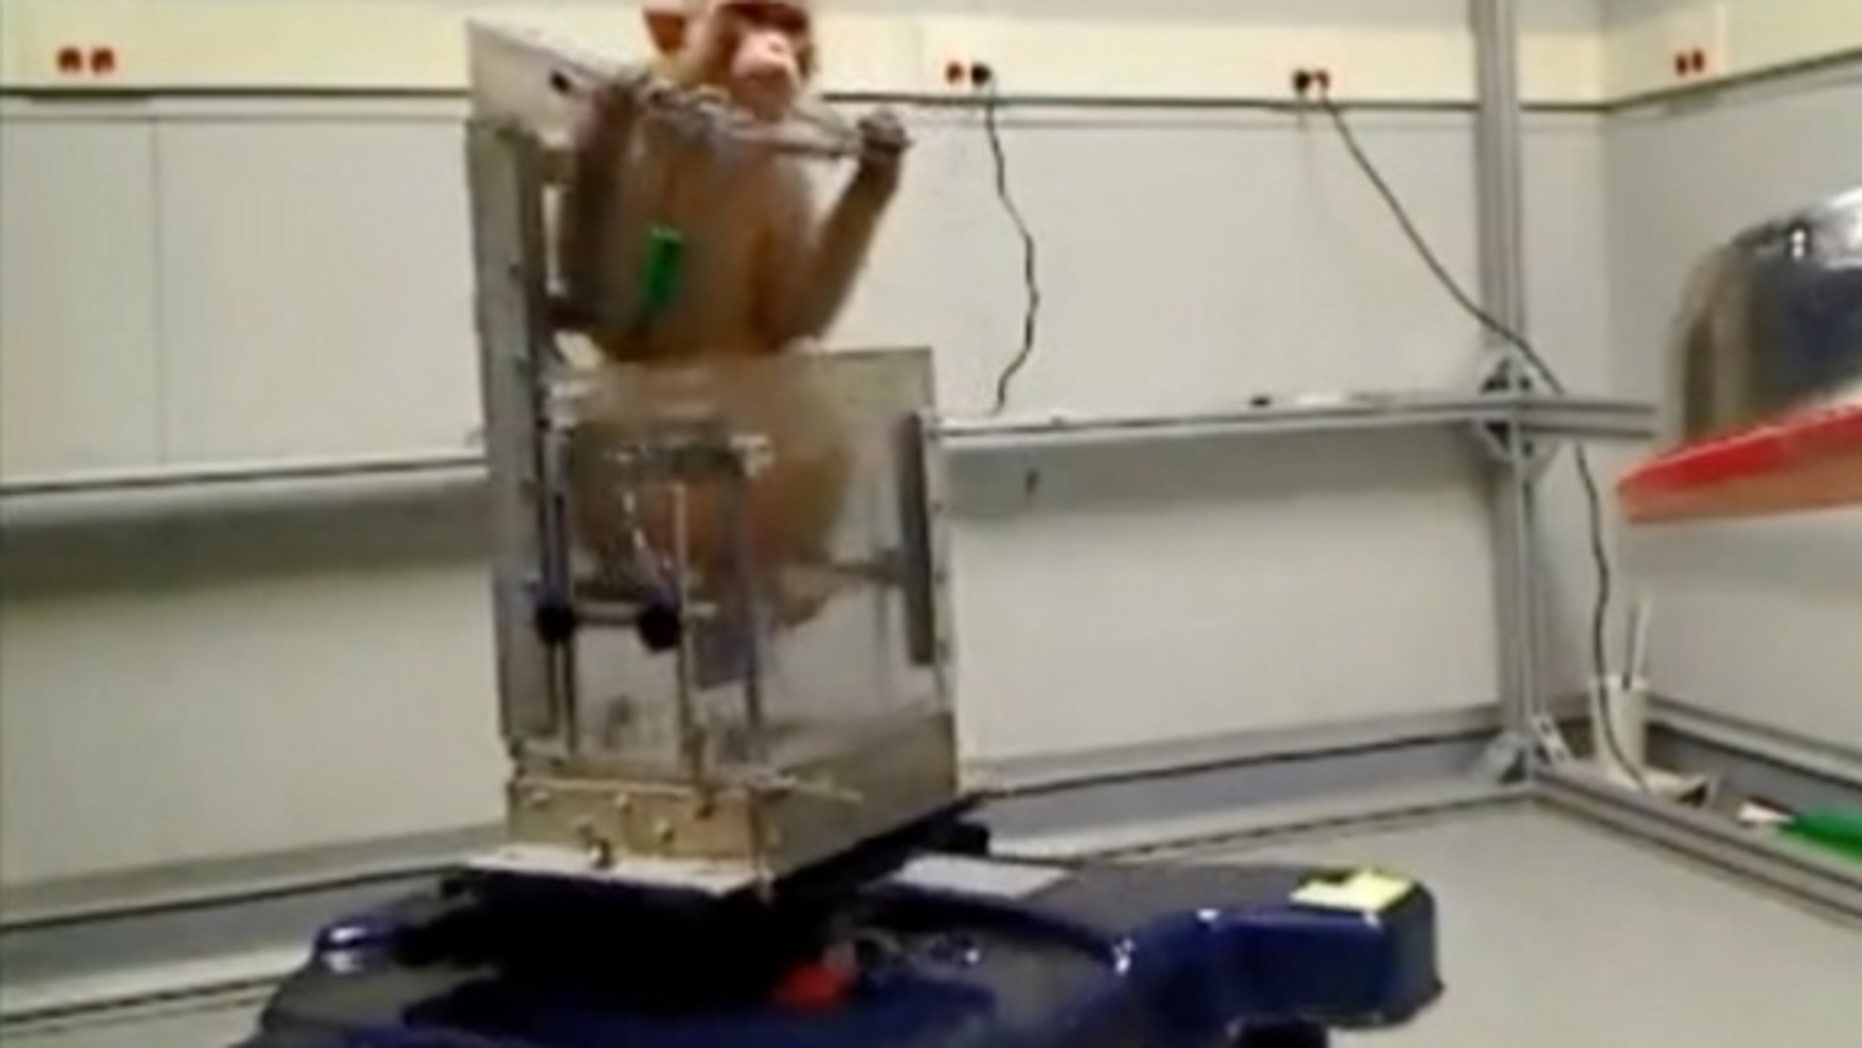 A monkey controls a wheelchair using only his thoughts. His goal? A bowl of tasty grapes.